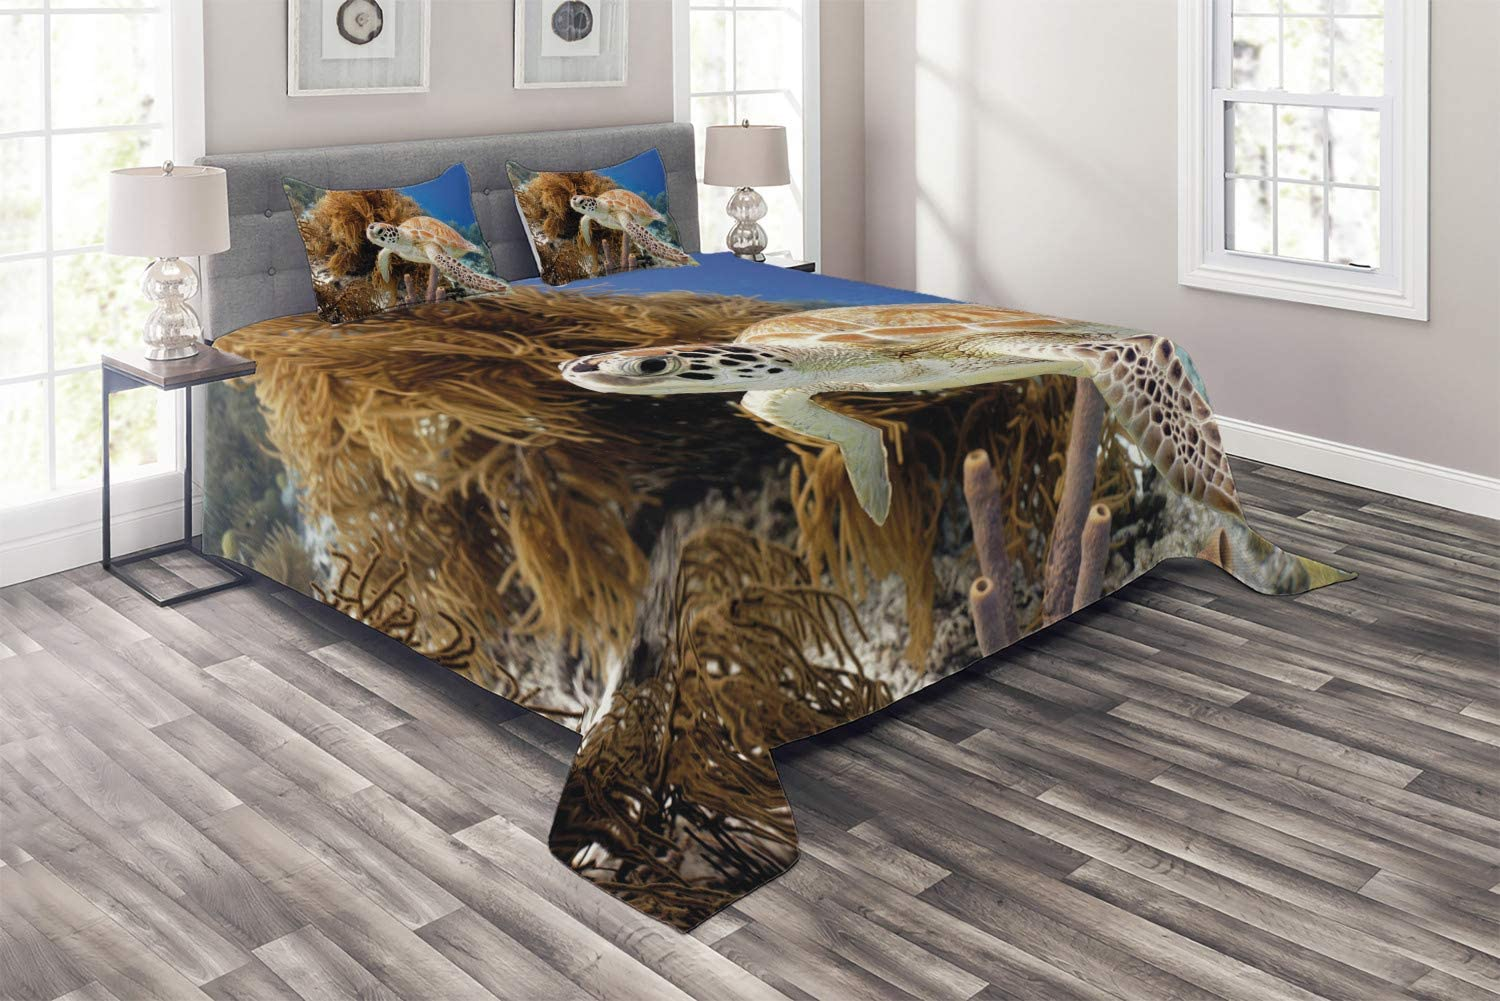 Ambesonne Turtle New York Mall online shop Coverlet Coral Reef and Close Ph Sea up